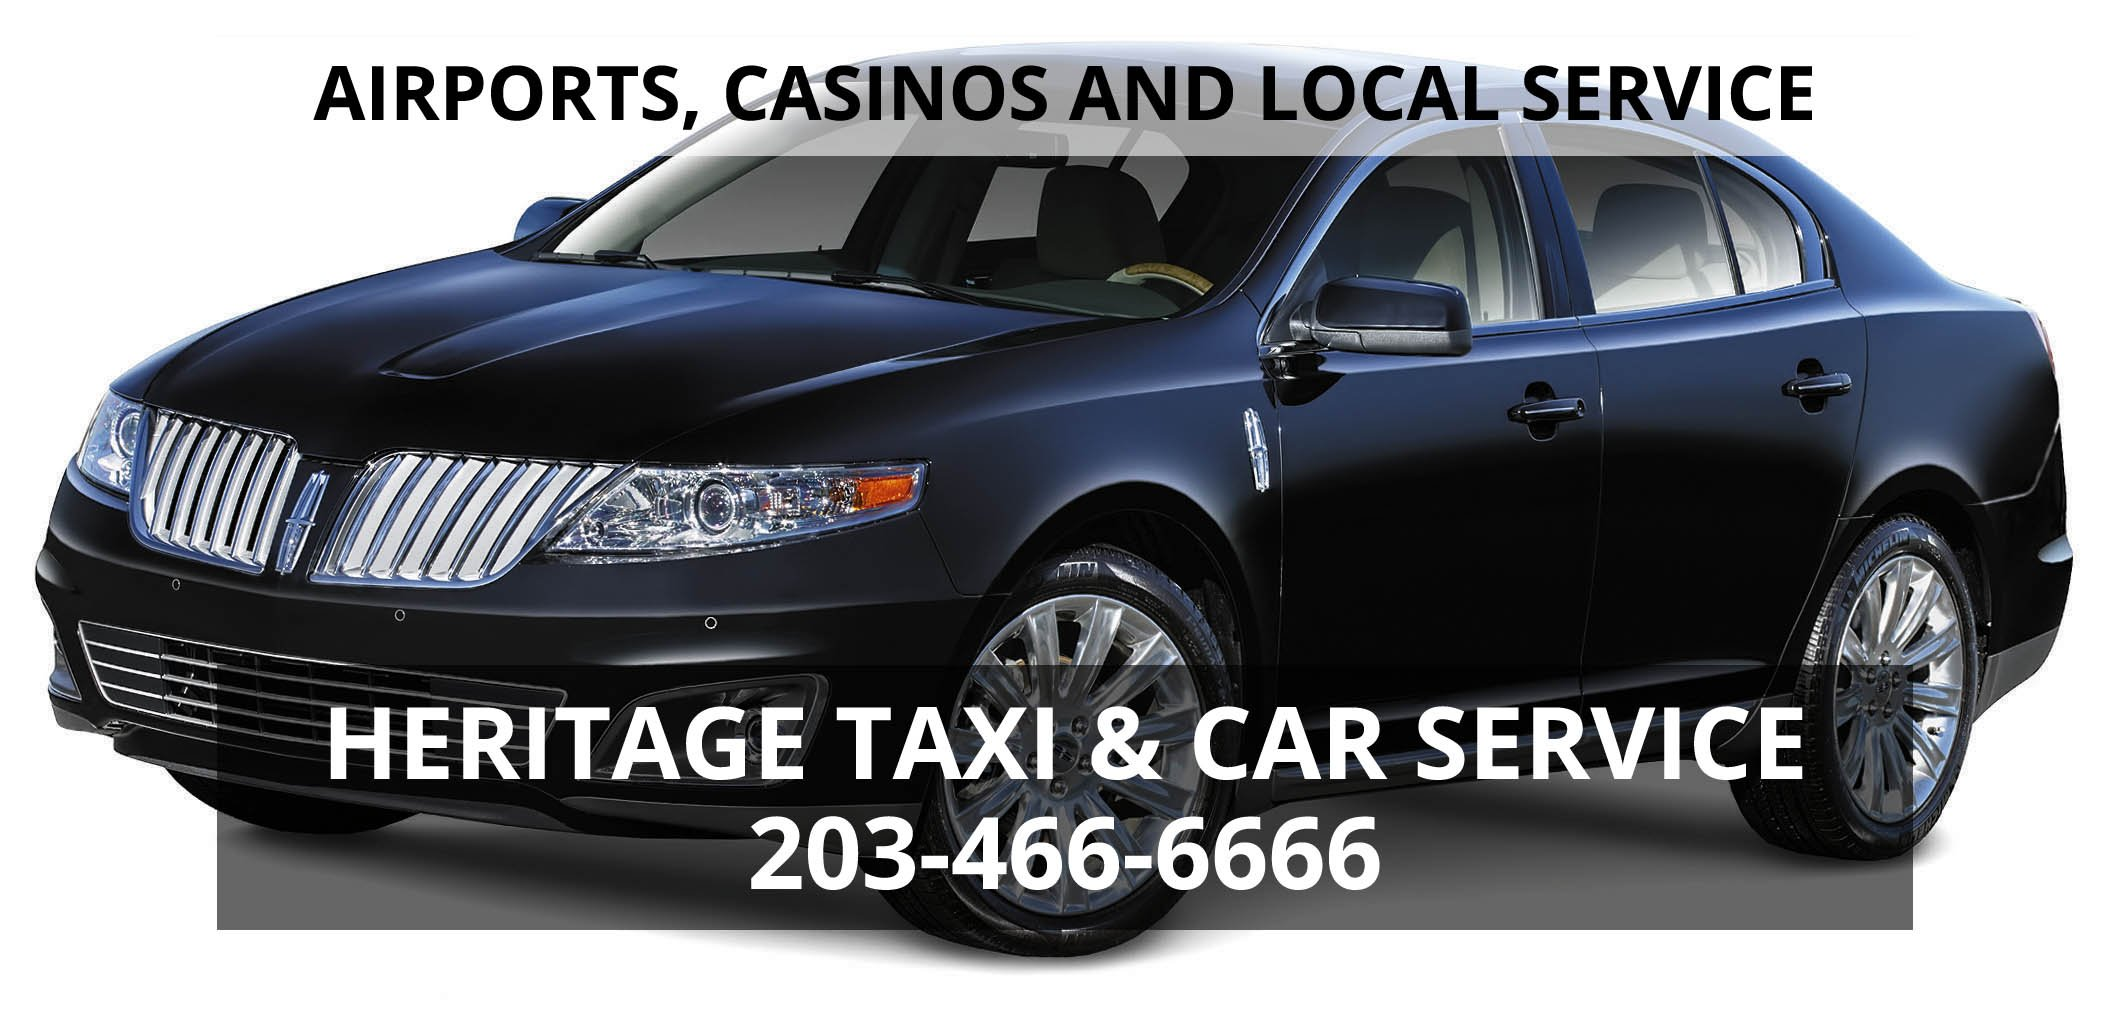 Land records branford ct - Heritage Taxi And Limo